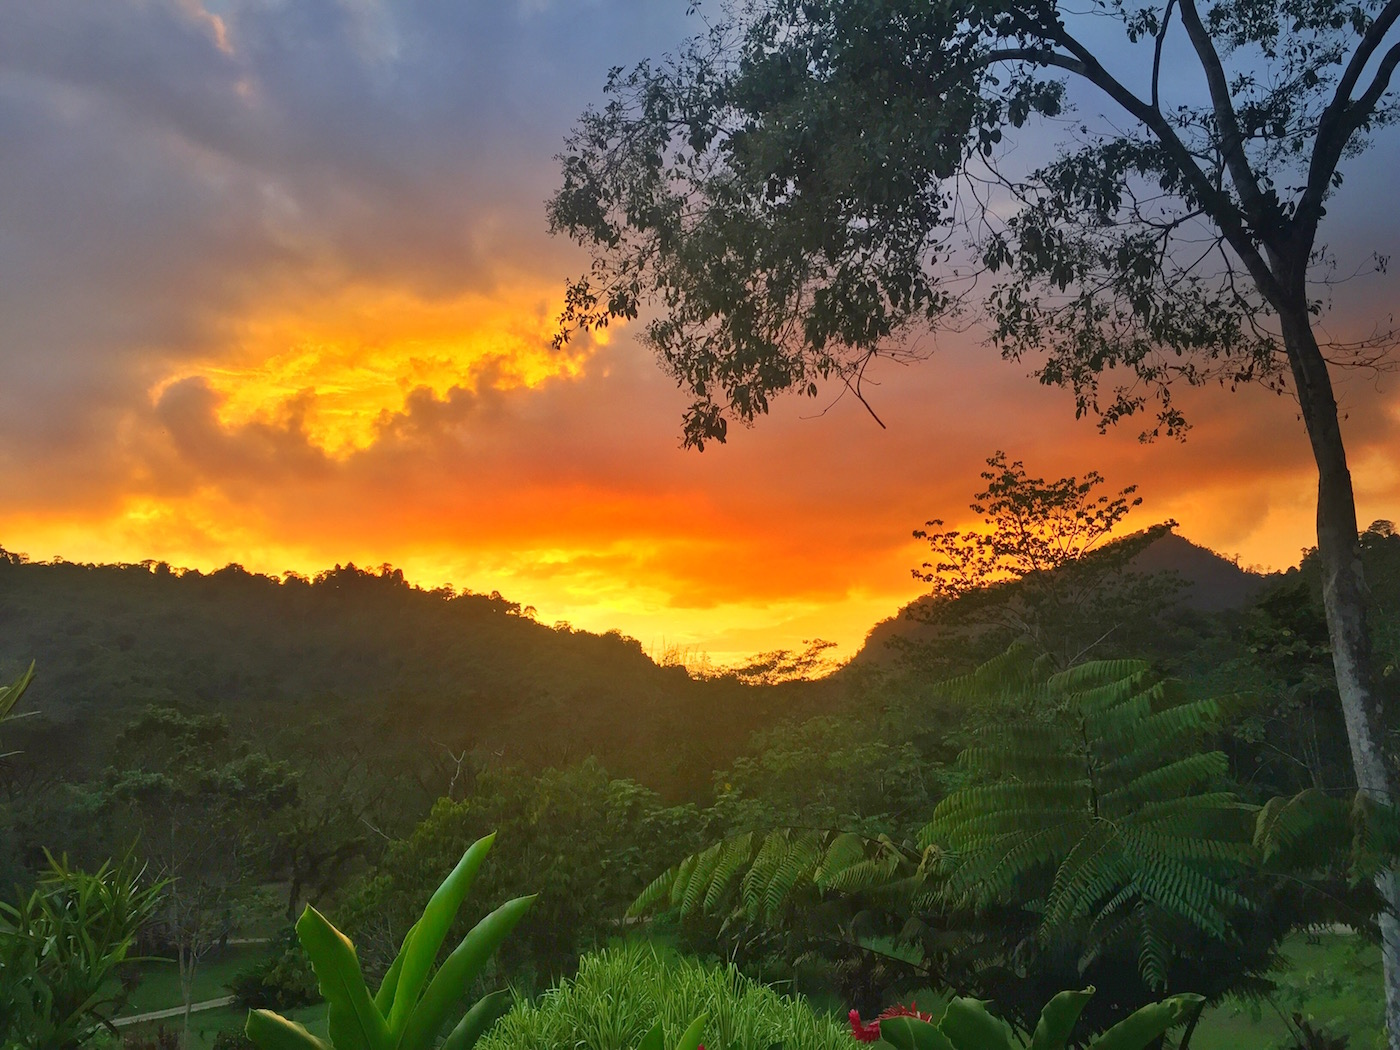 My 10 Days In Costa Rica Jungles Solo Travel Problems More Waterfalls Where To Next Budget Travel Tips Solo Female Travel Help Travel Guides Travel Inspiration Travel Photography